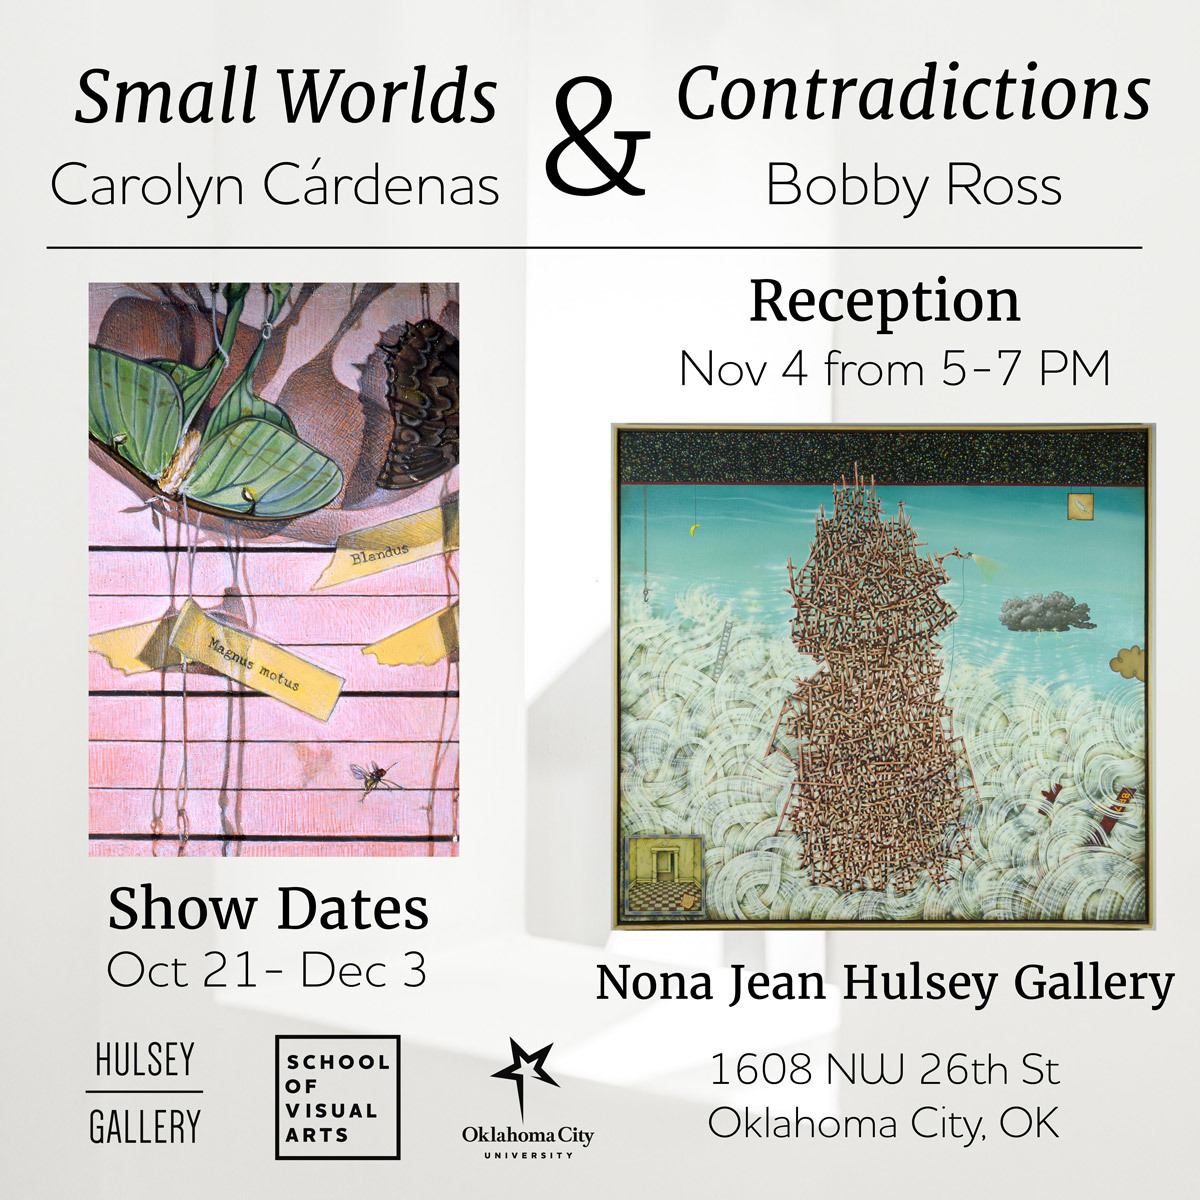 show card for exhibit - information included in text